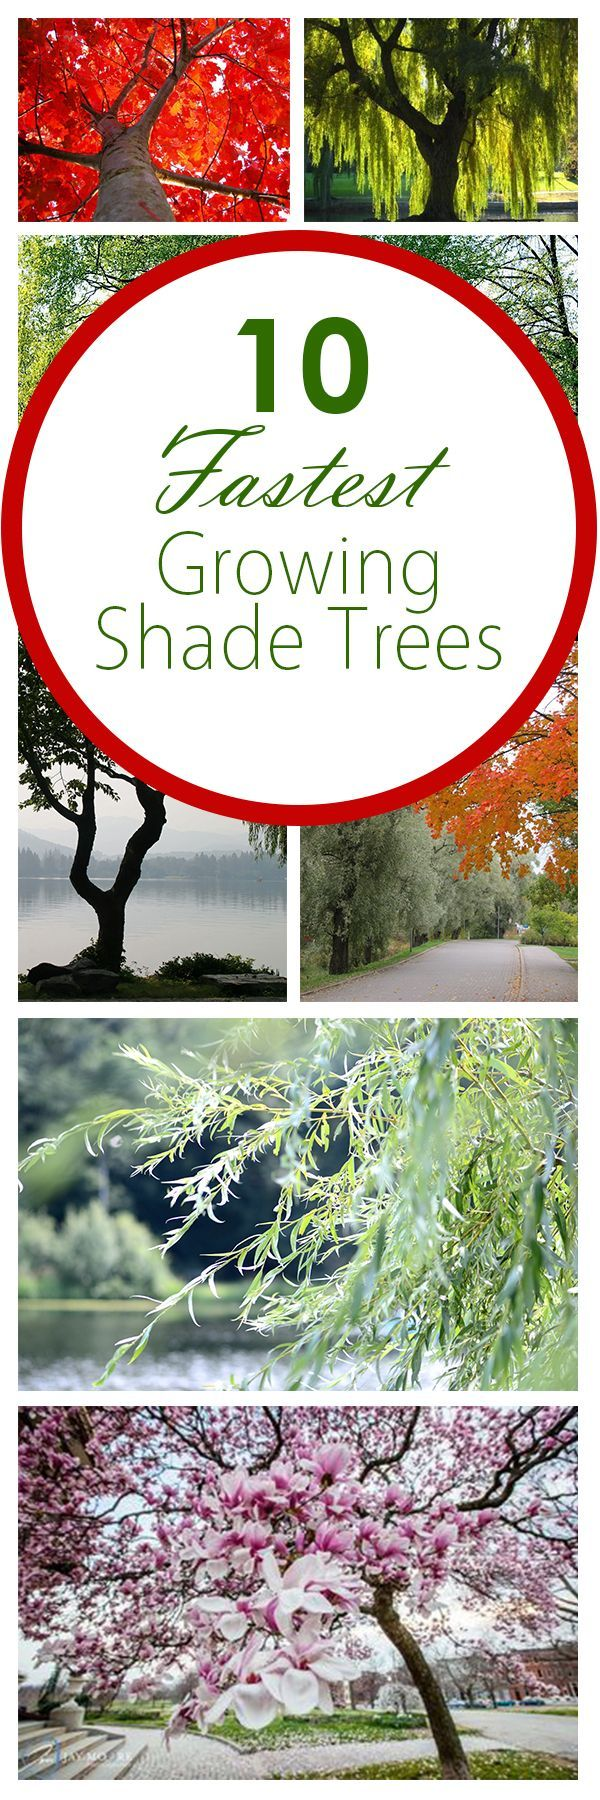 Shade trees, gardening with trees, gardening, popular pins, landscaping, landscaping ideas, tips and tricks, growing trees.